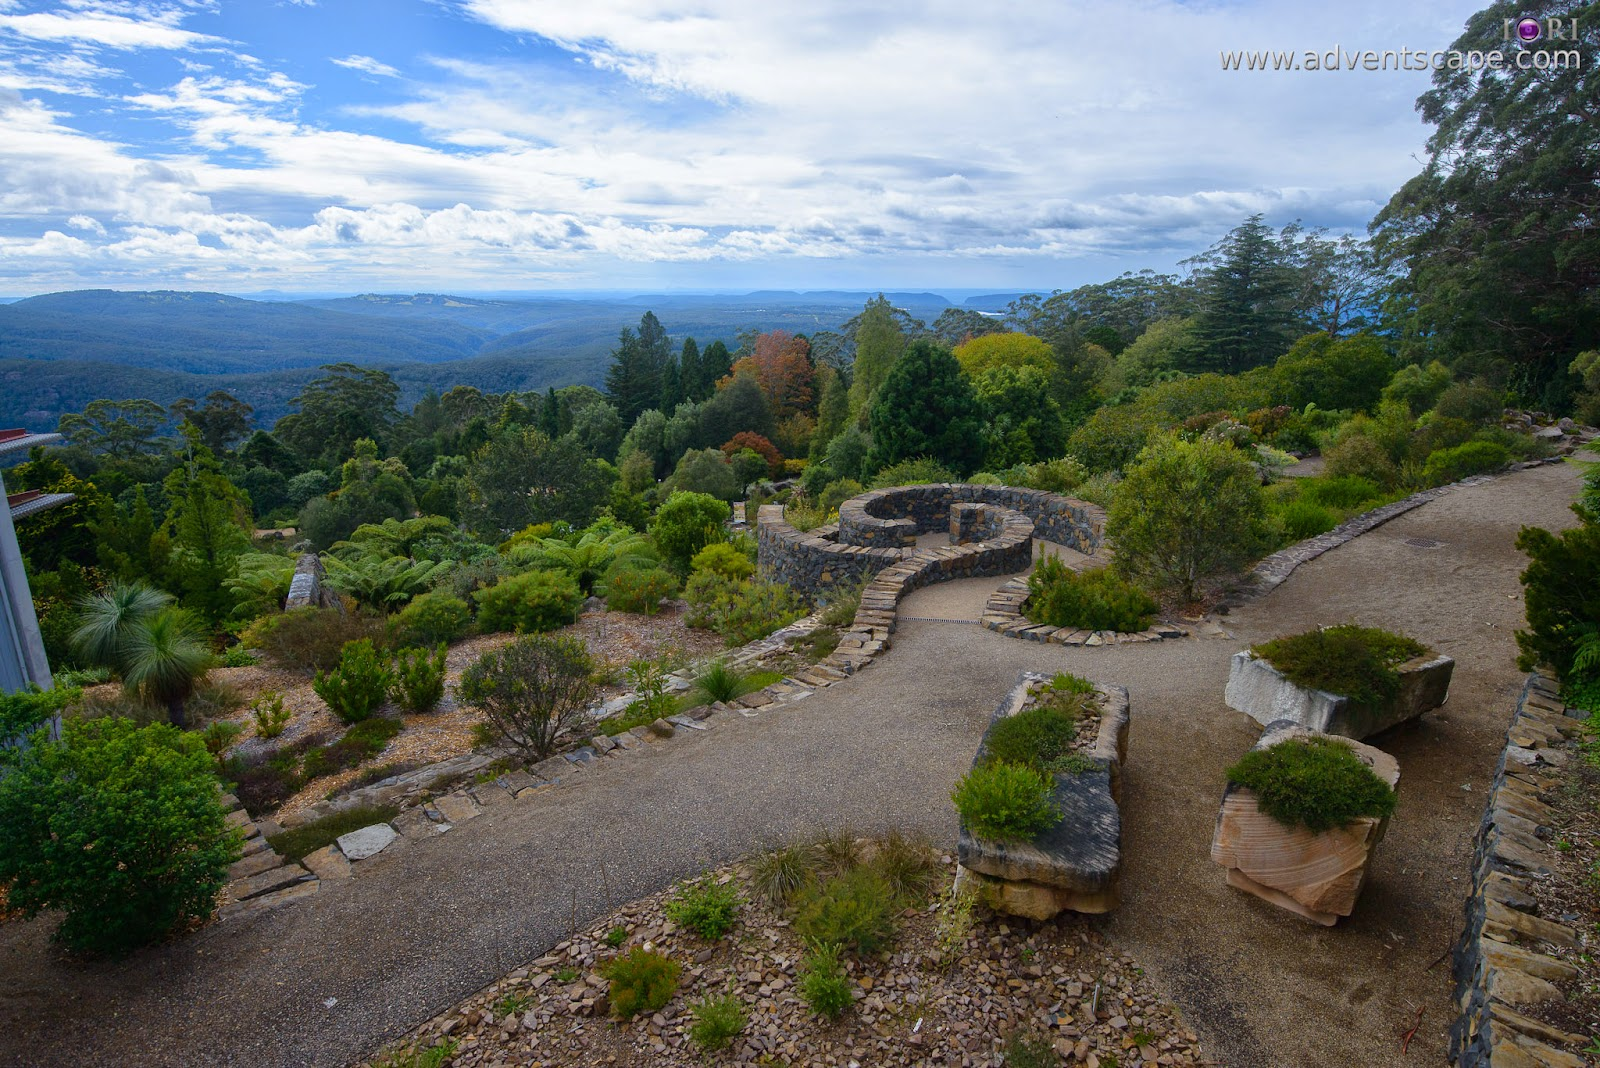 adventscape, Australia, Blue Mountain, Botanical Gardens, iori, Mount Tomah, New South Wales, NSW, Philip Avellana, tourism, travel, fall, autumn